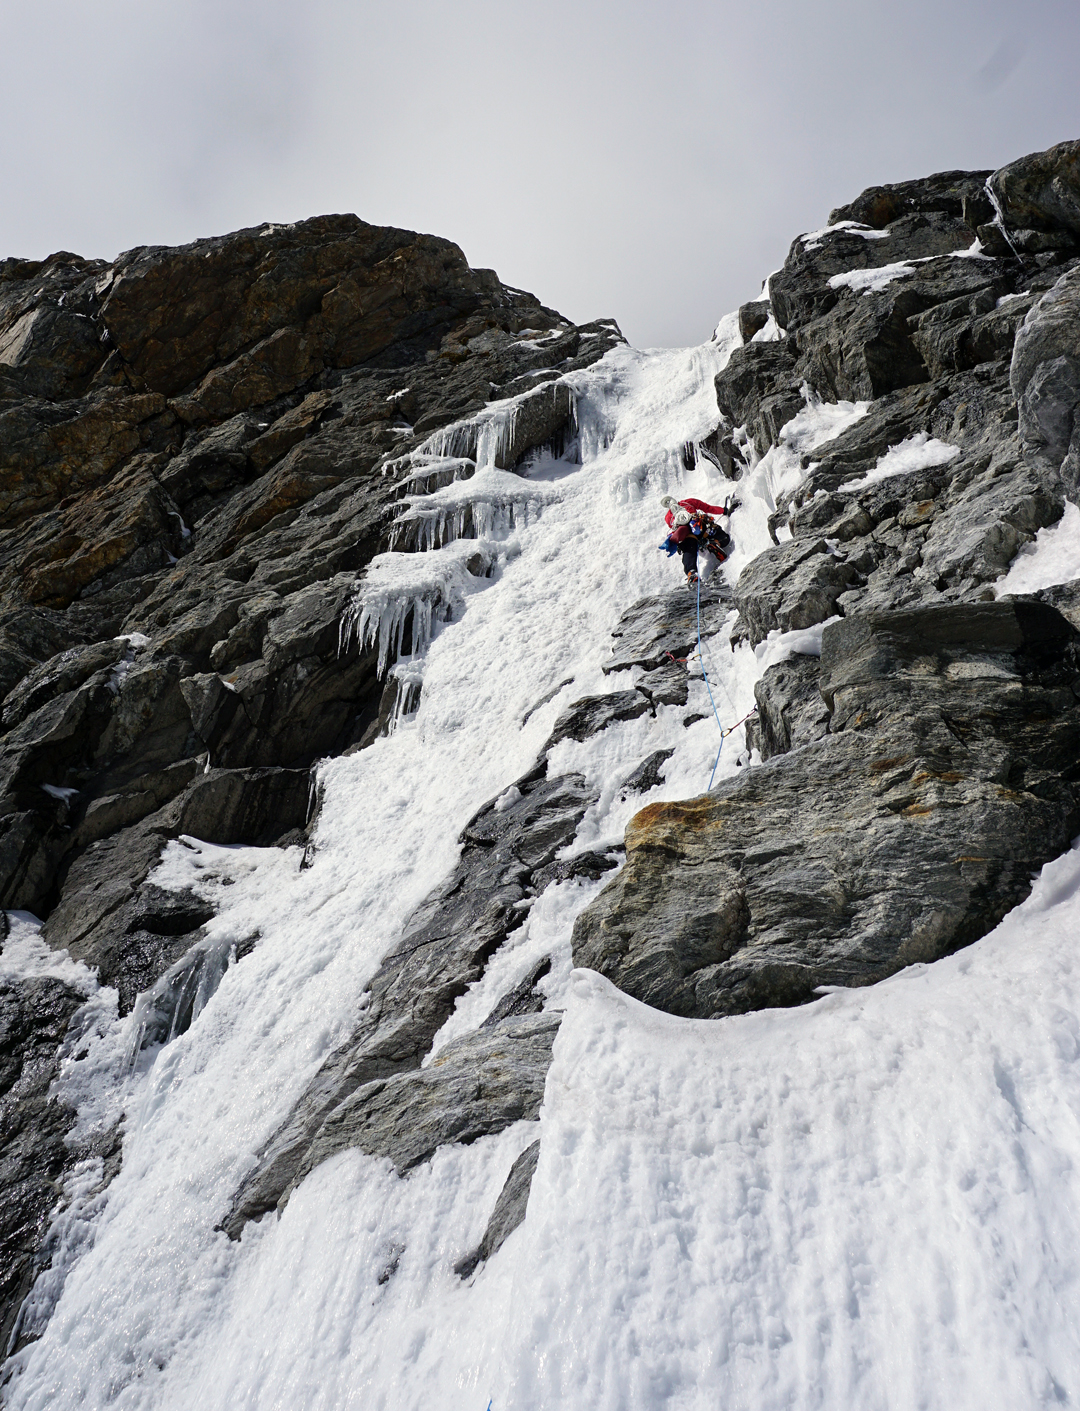 Yusuke Sato on an icefall during day one of Aal Izz Well on the northeast face of Cerro Kishtwar.